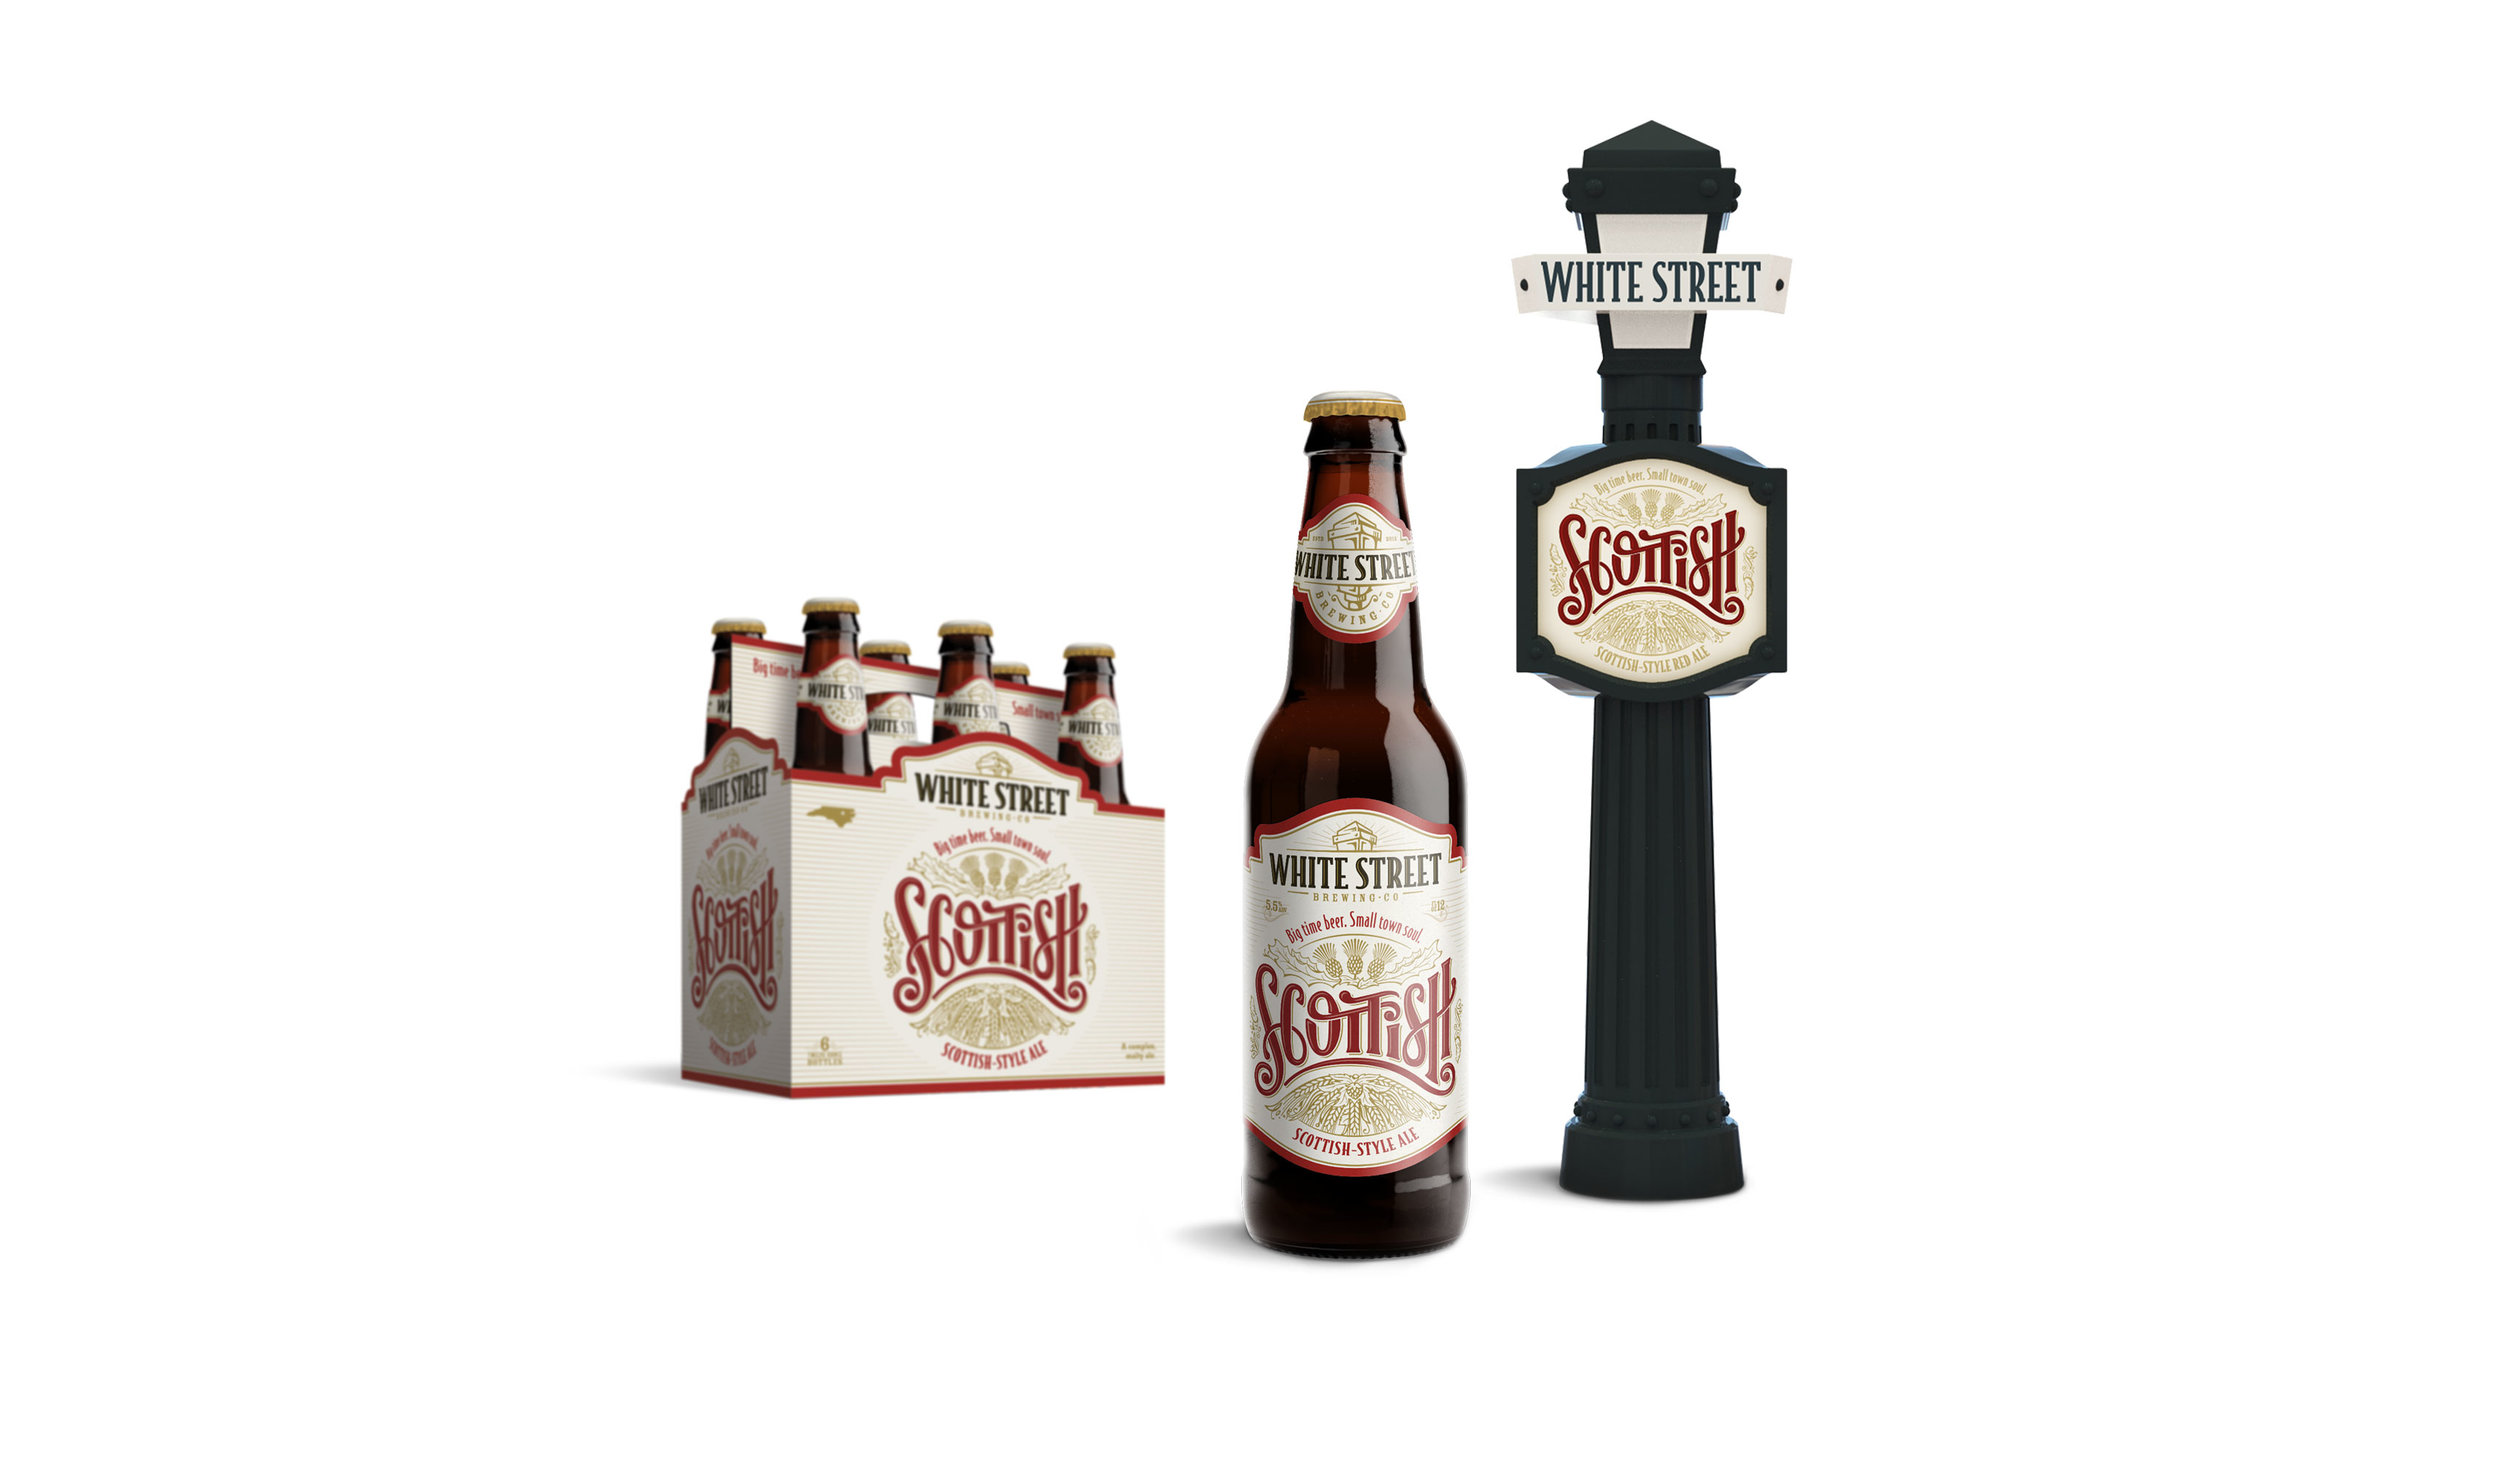 Craft-Beer-Branding-White-Street-Brewing-Co-Scottish-Product-Design.jpg